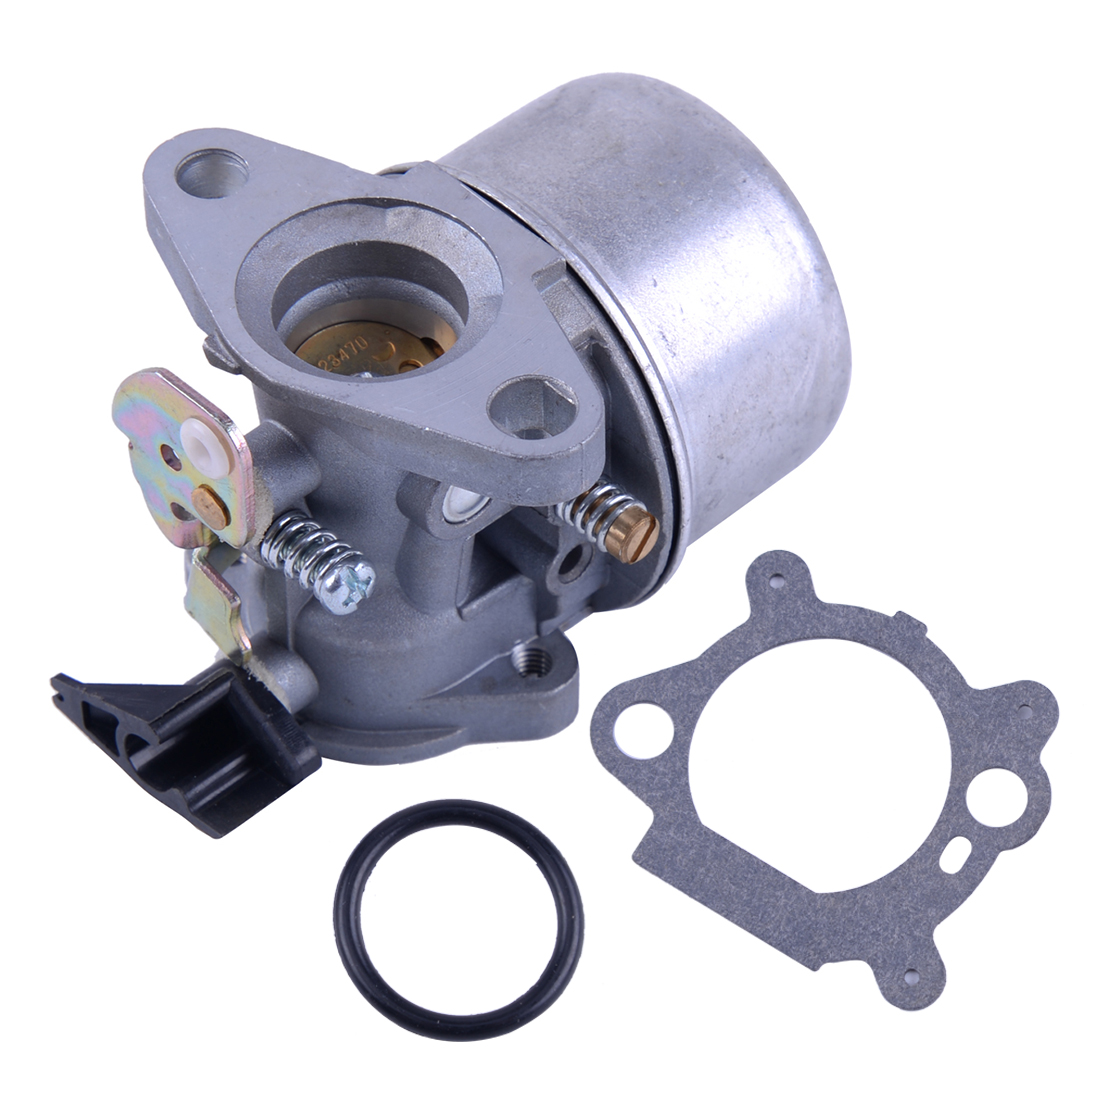 Hvlystory Metal Carburetor with Rubber Ring for Briggs and Stratton Quantum Motor #498965